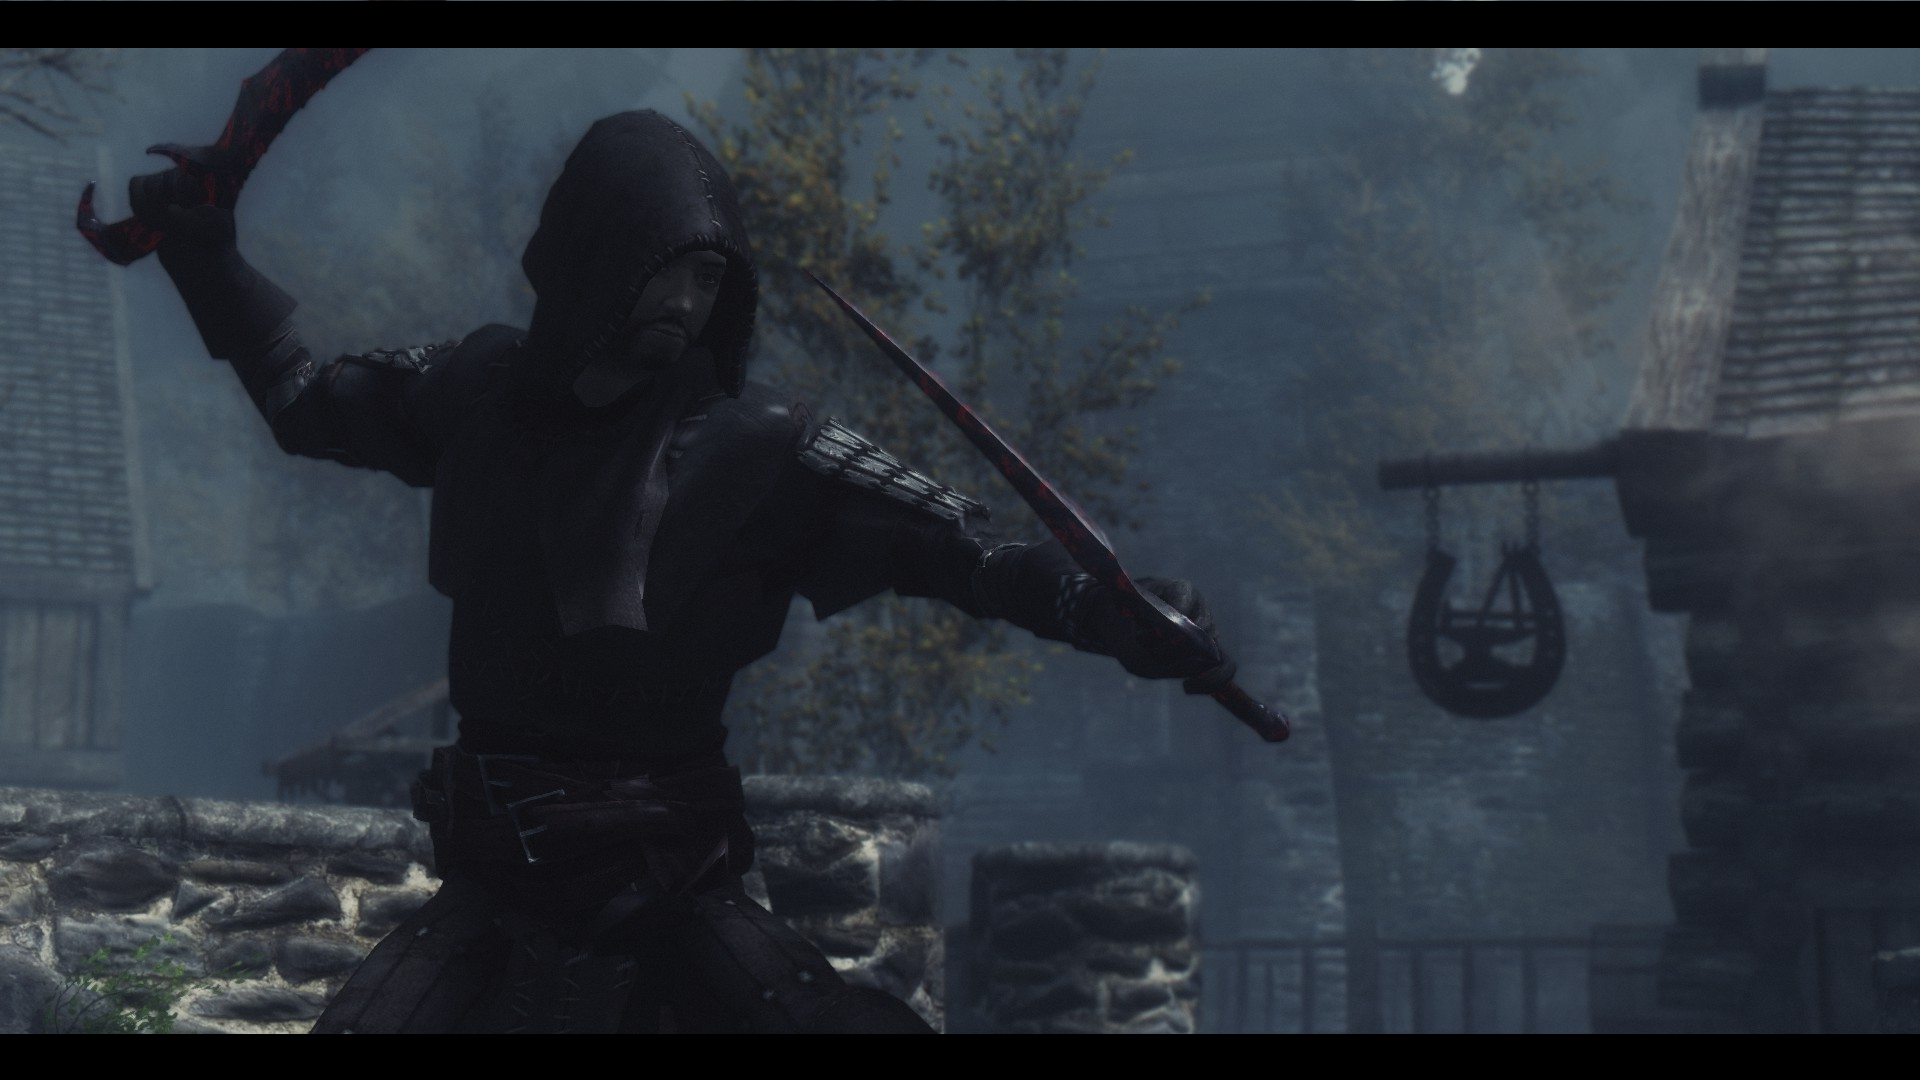 how to make a mage assassin in skyrim